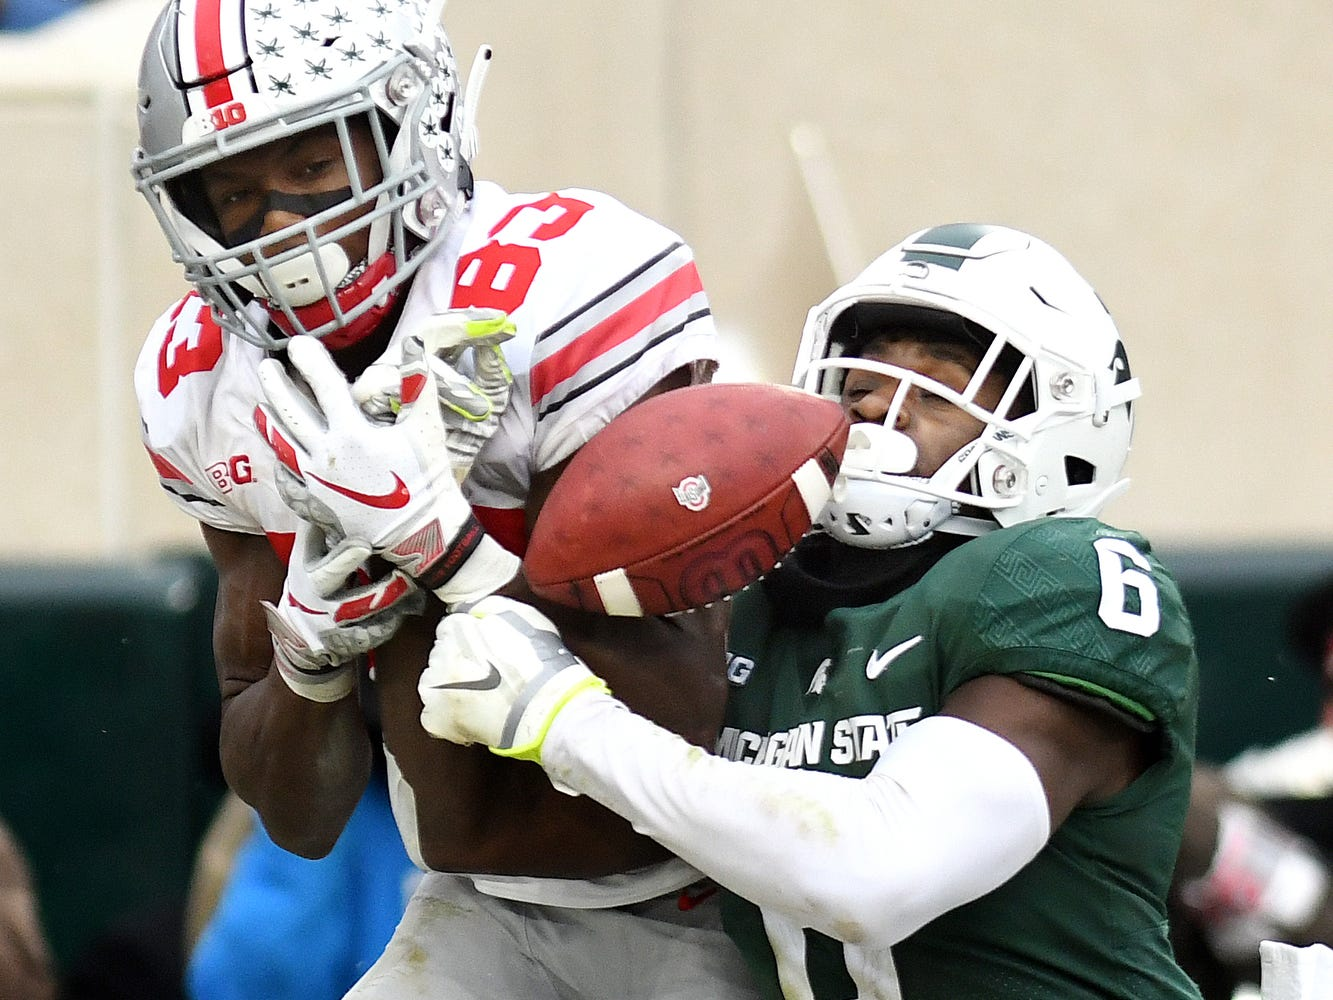 Michigan State's David Dowell, right, breaks up a pass intended for Ohio State's Terry McLaurin during the fourth quarter on Saturday, Nov. 10, 2018, in East Lansing.